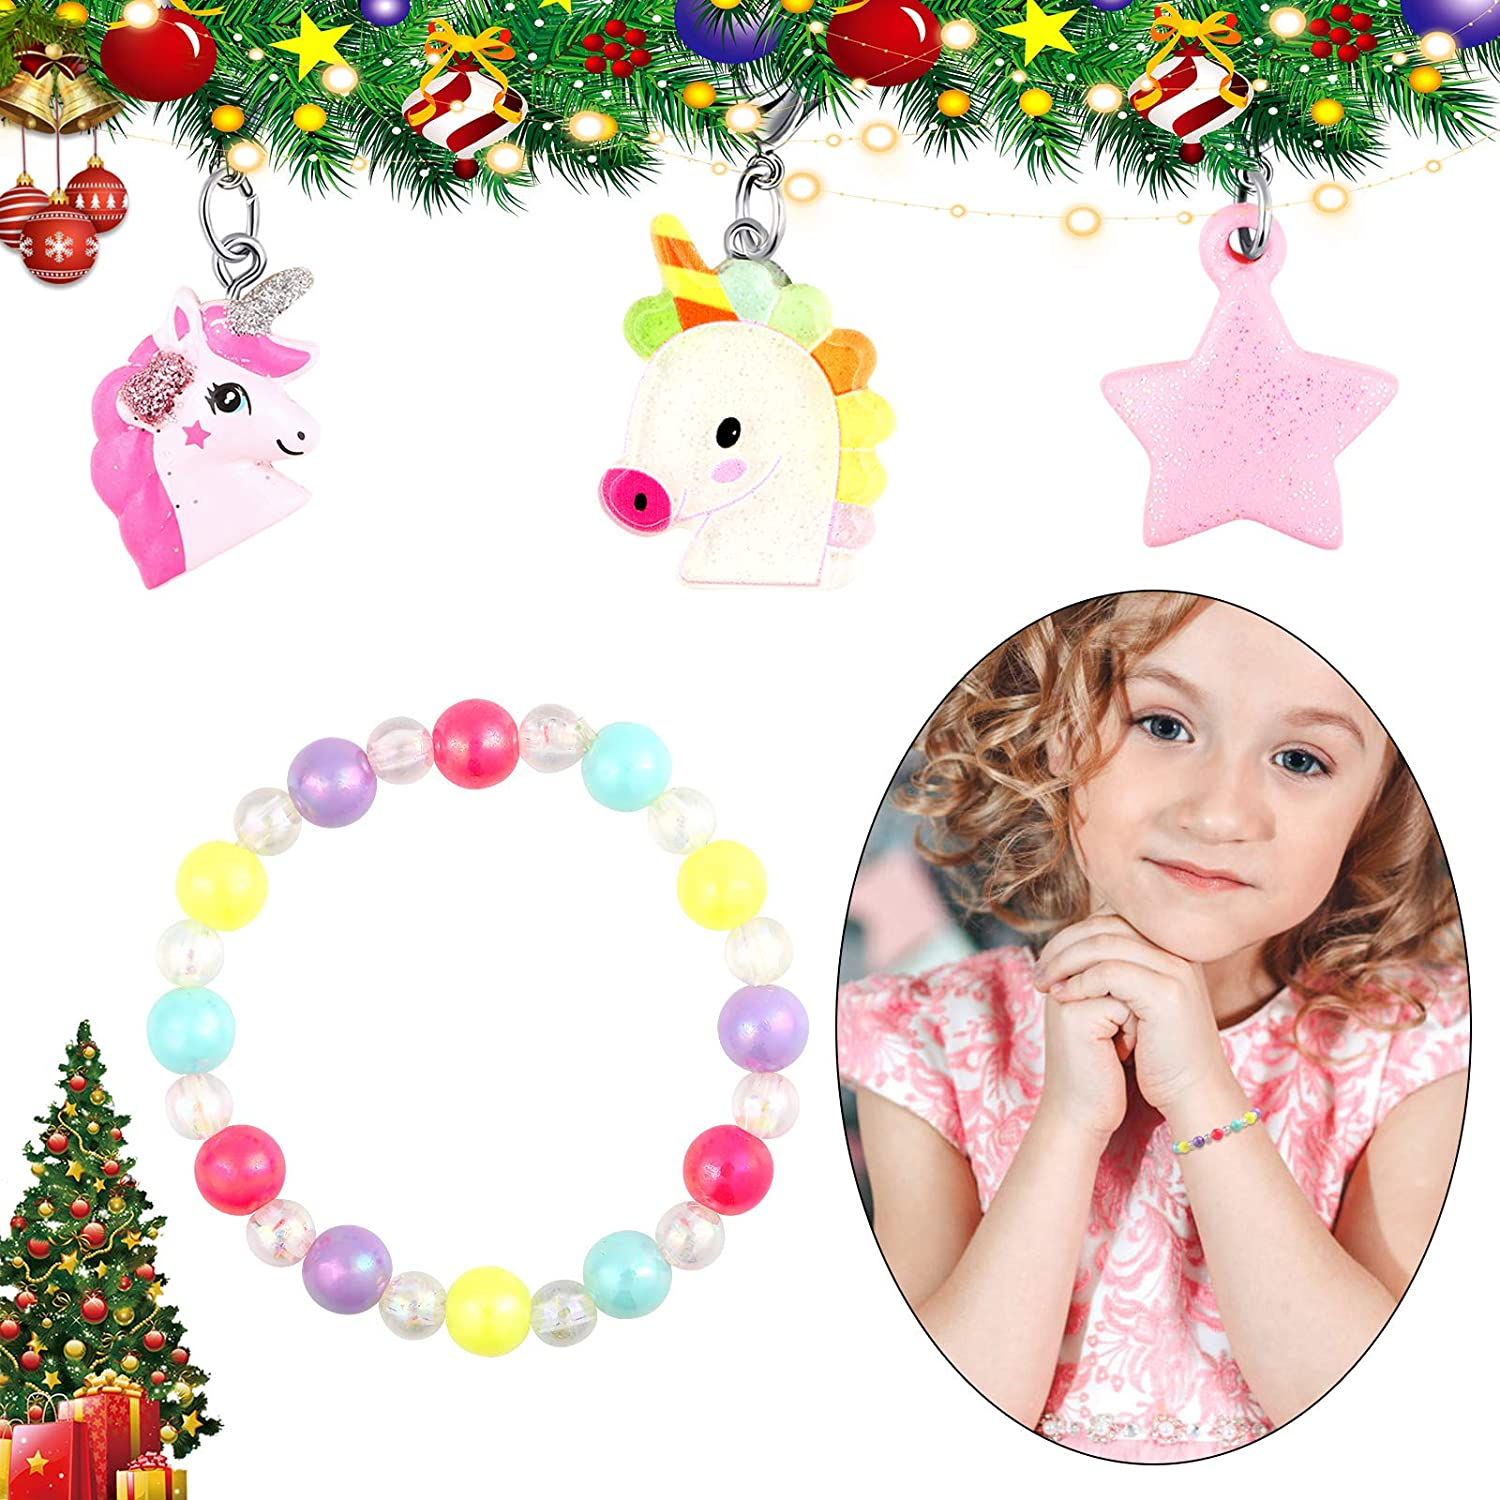 B Bascolor Kids Advent Calendar 2020 Christmas Countdown Calendar with 24pcs Fashion Jewelry Hair Accessories for Girls